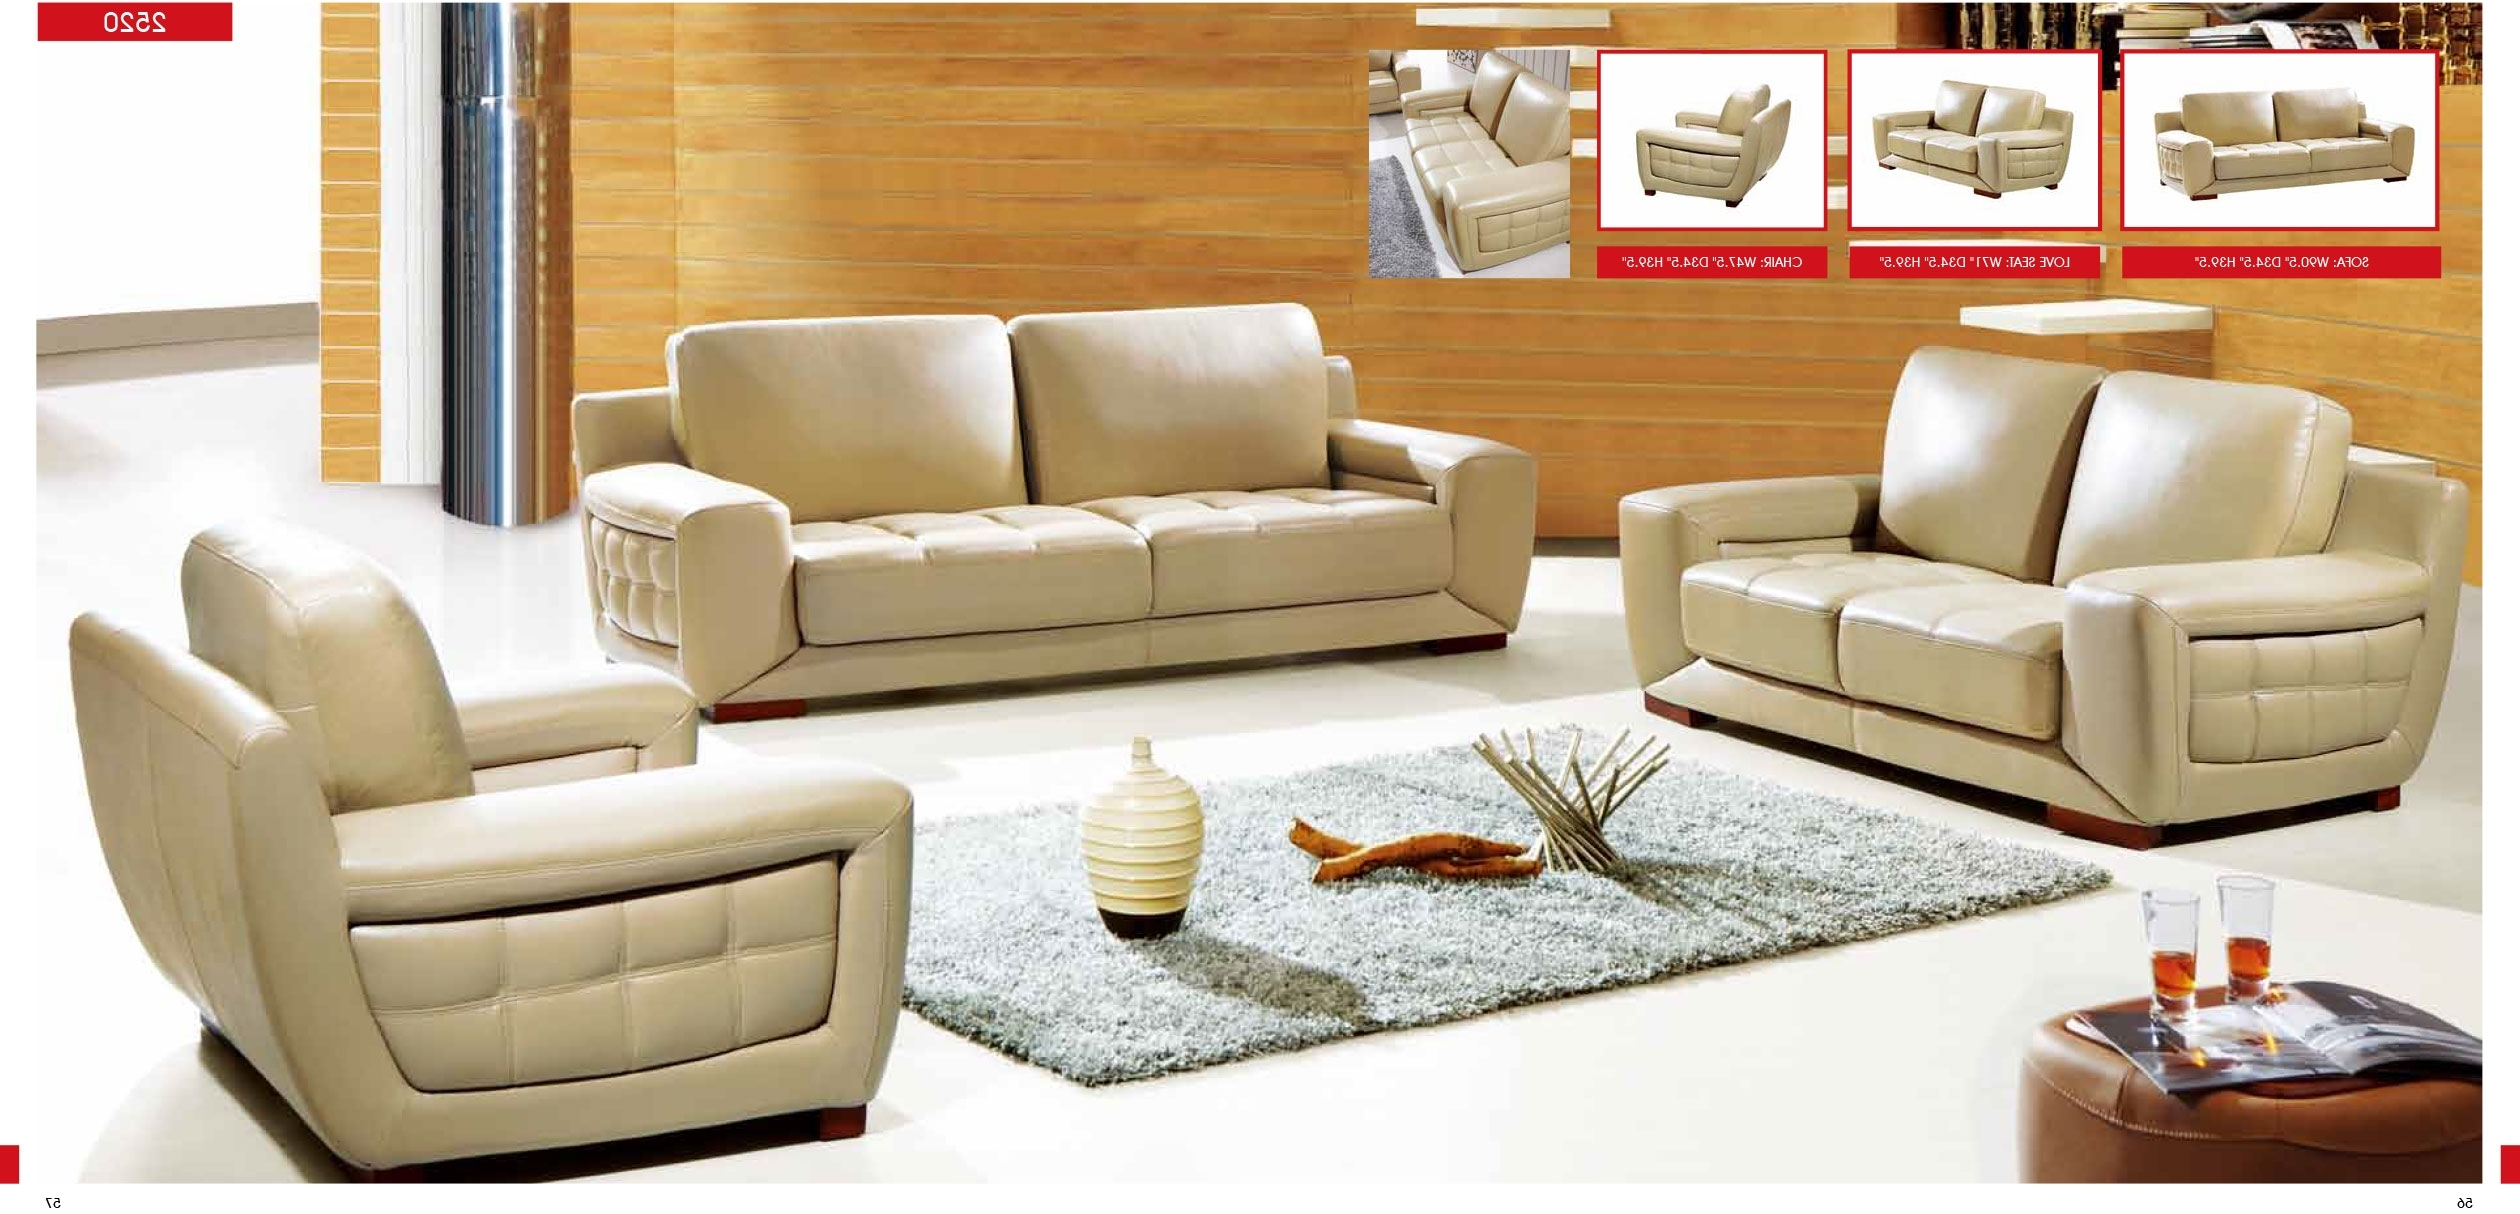 Cream Colored Sofas Throughout Preferred Manhattan Cream Colored Leather Sectional Sofa (View 10 of 20)